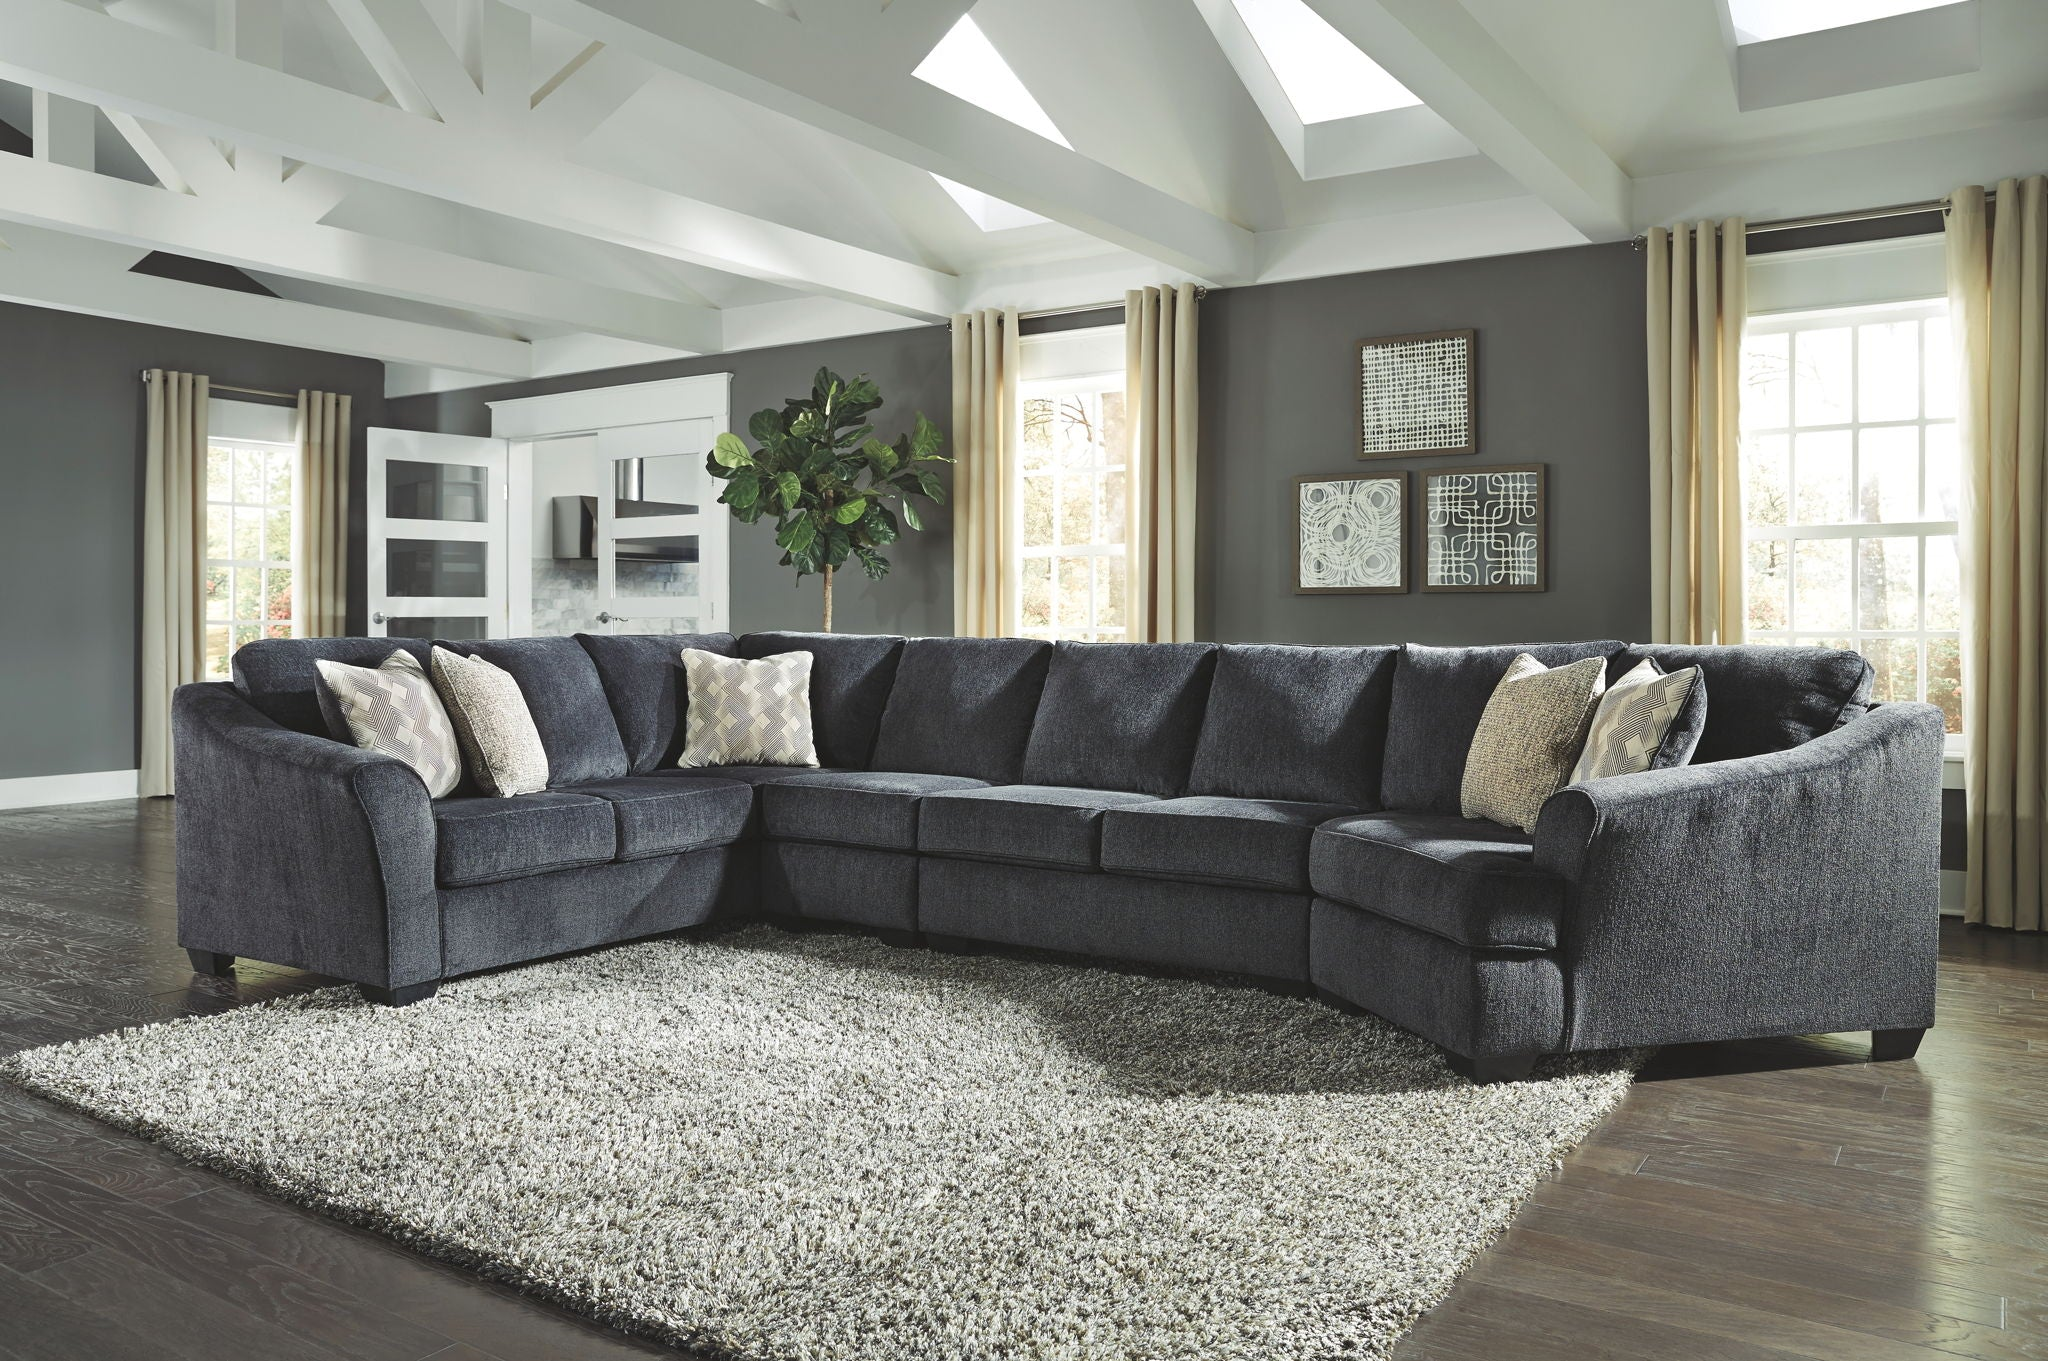 Eltmann Sectional with Cuddler | Calgary's Furniture Store